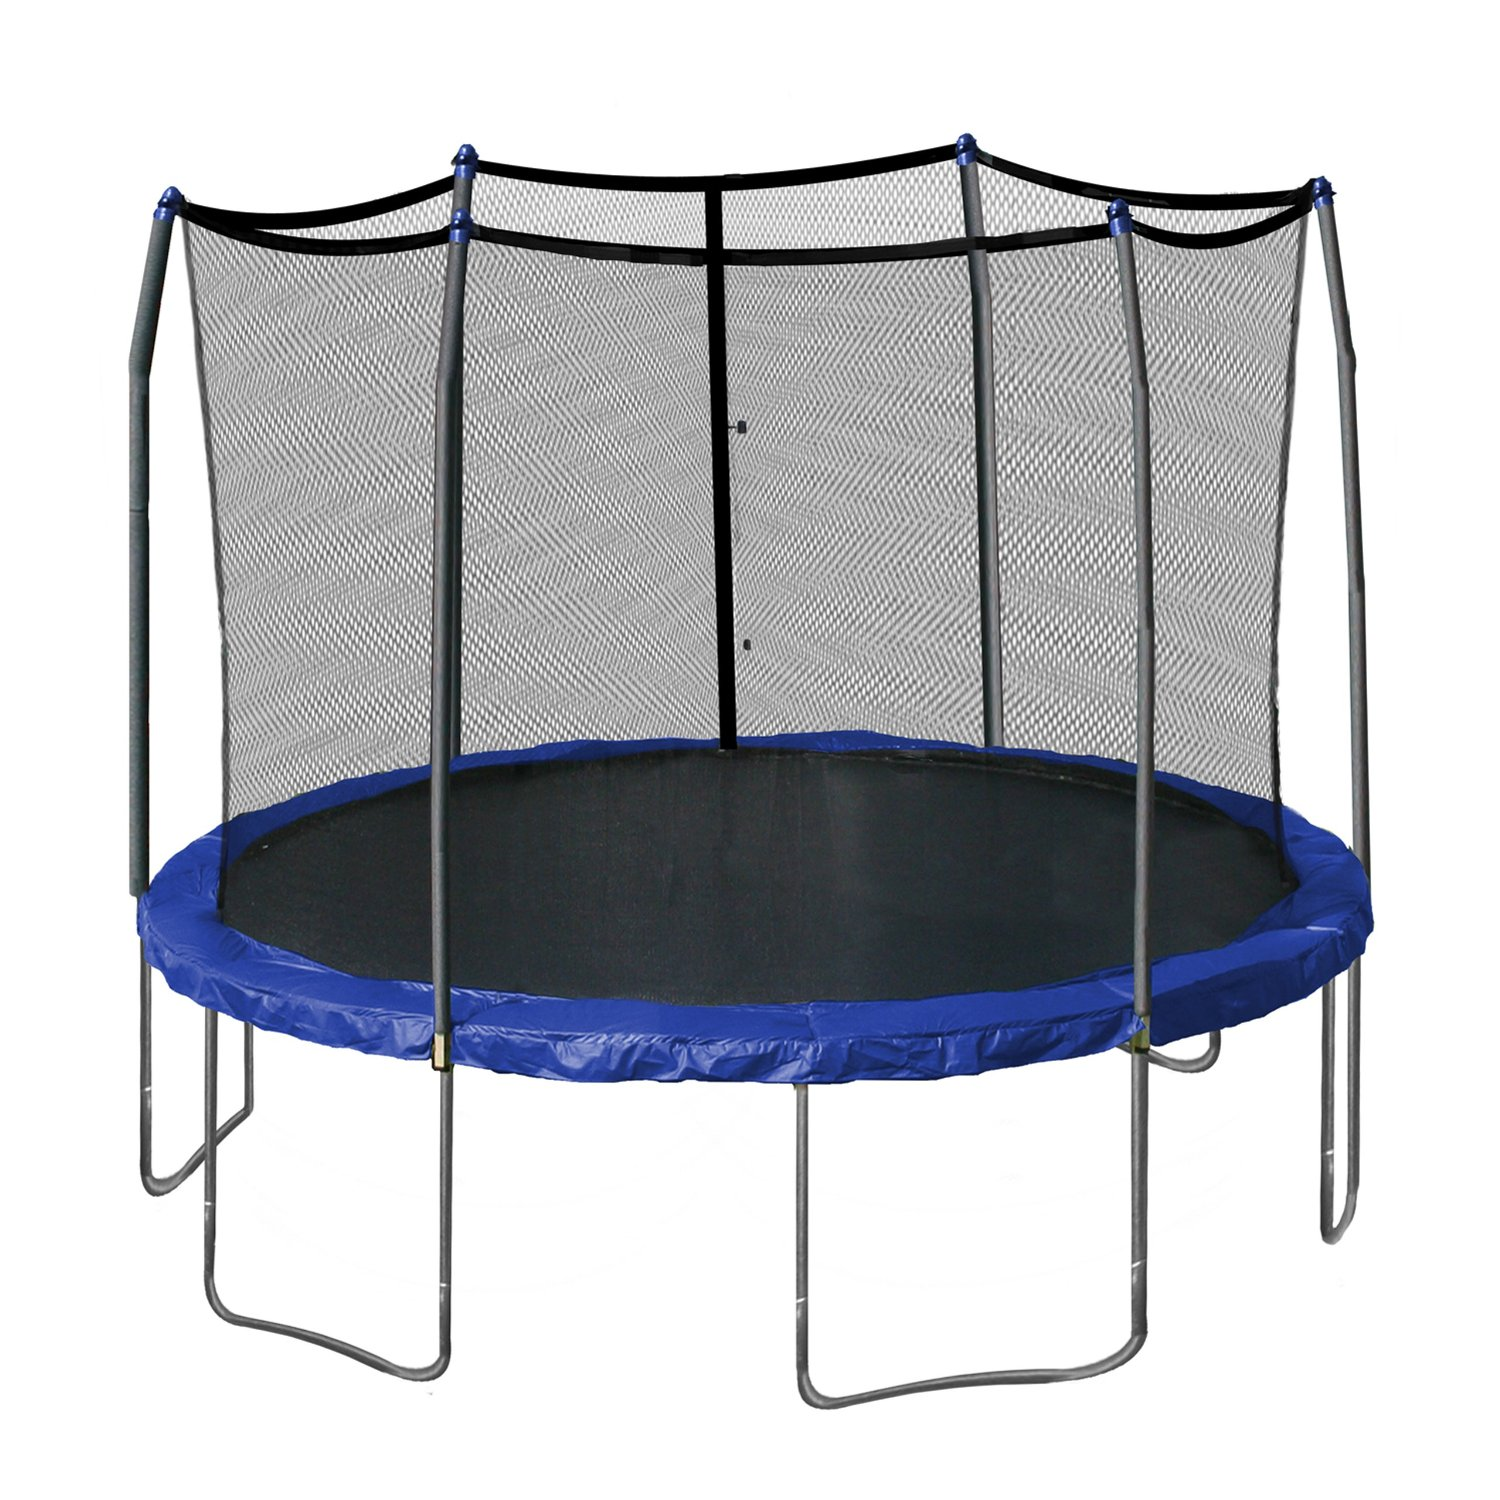 Top 9 Best Trampolines in 2020 Review